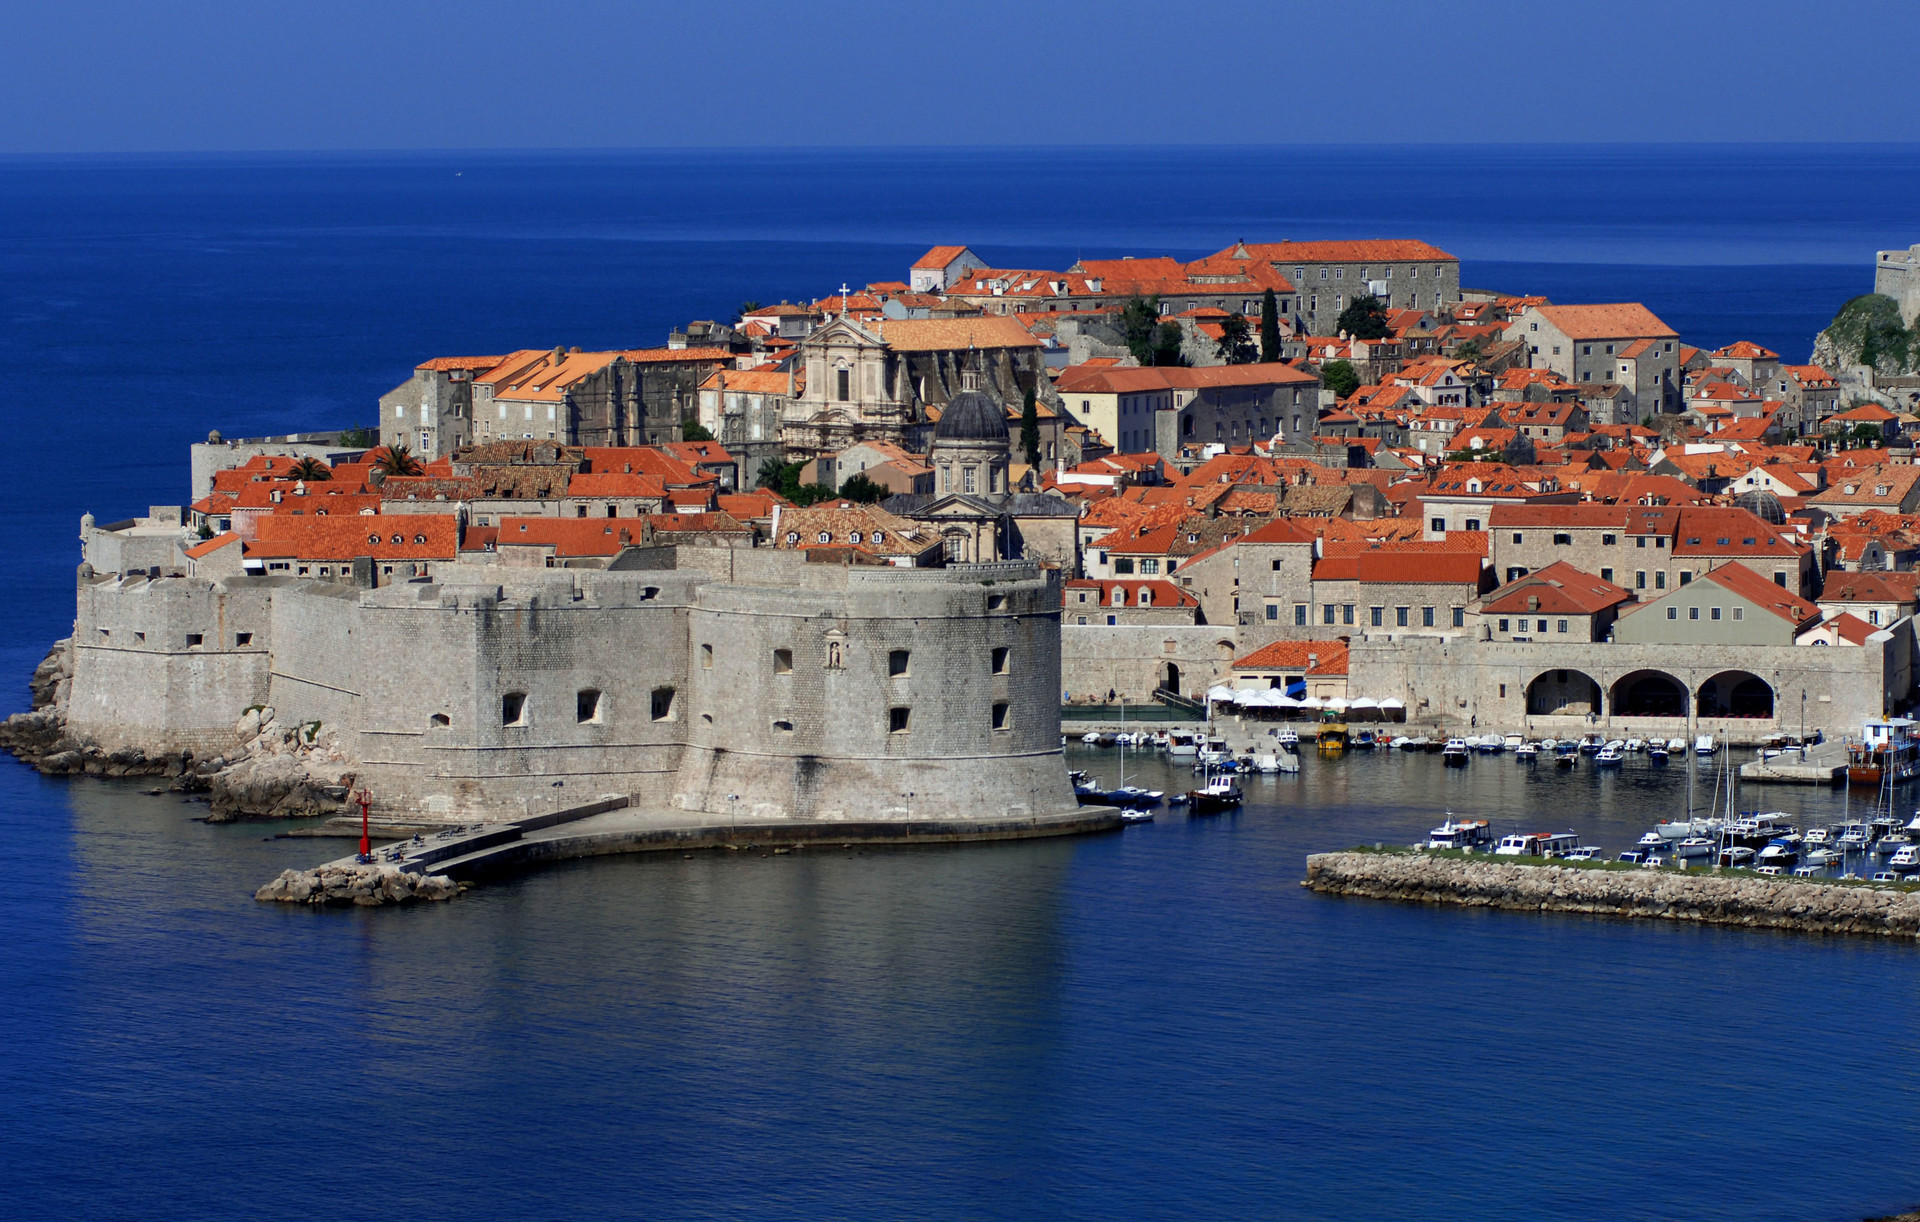 Dubrovnik, Croatia - Monterrasol private tours to Croatia. Travel agency offers custom private car tours to see Croatia in Croatia. Order custom private tour to Croatia with departure date on request.